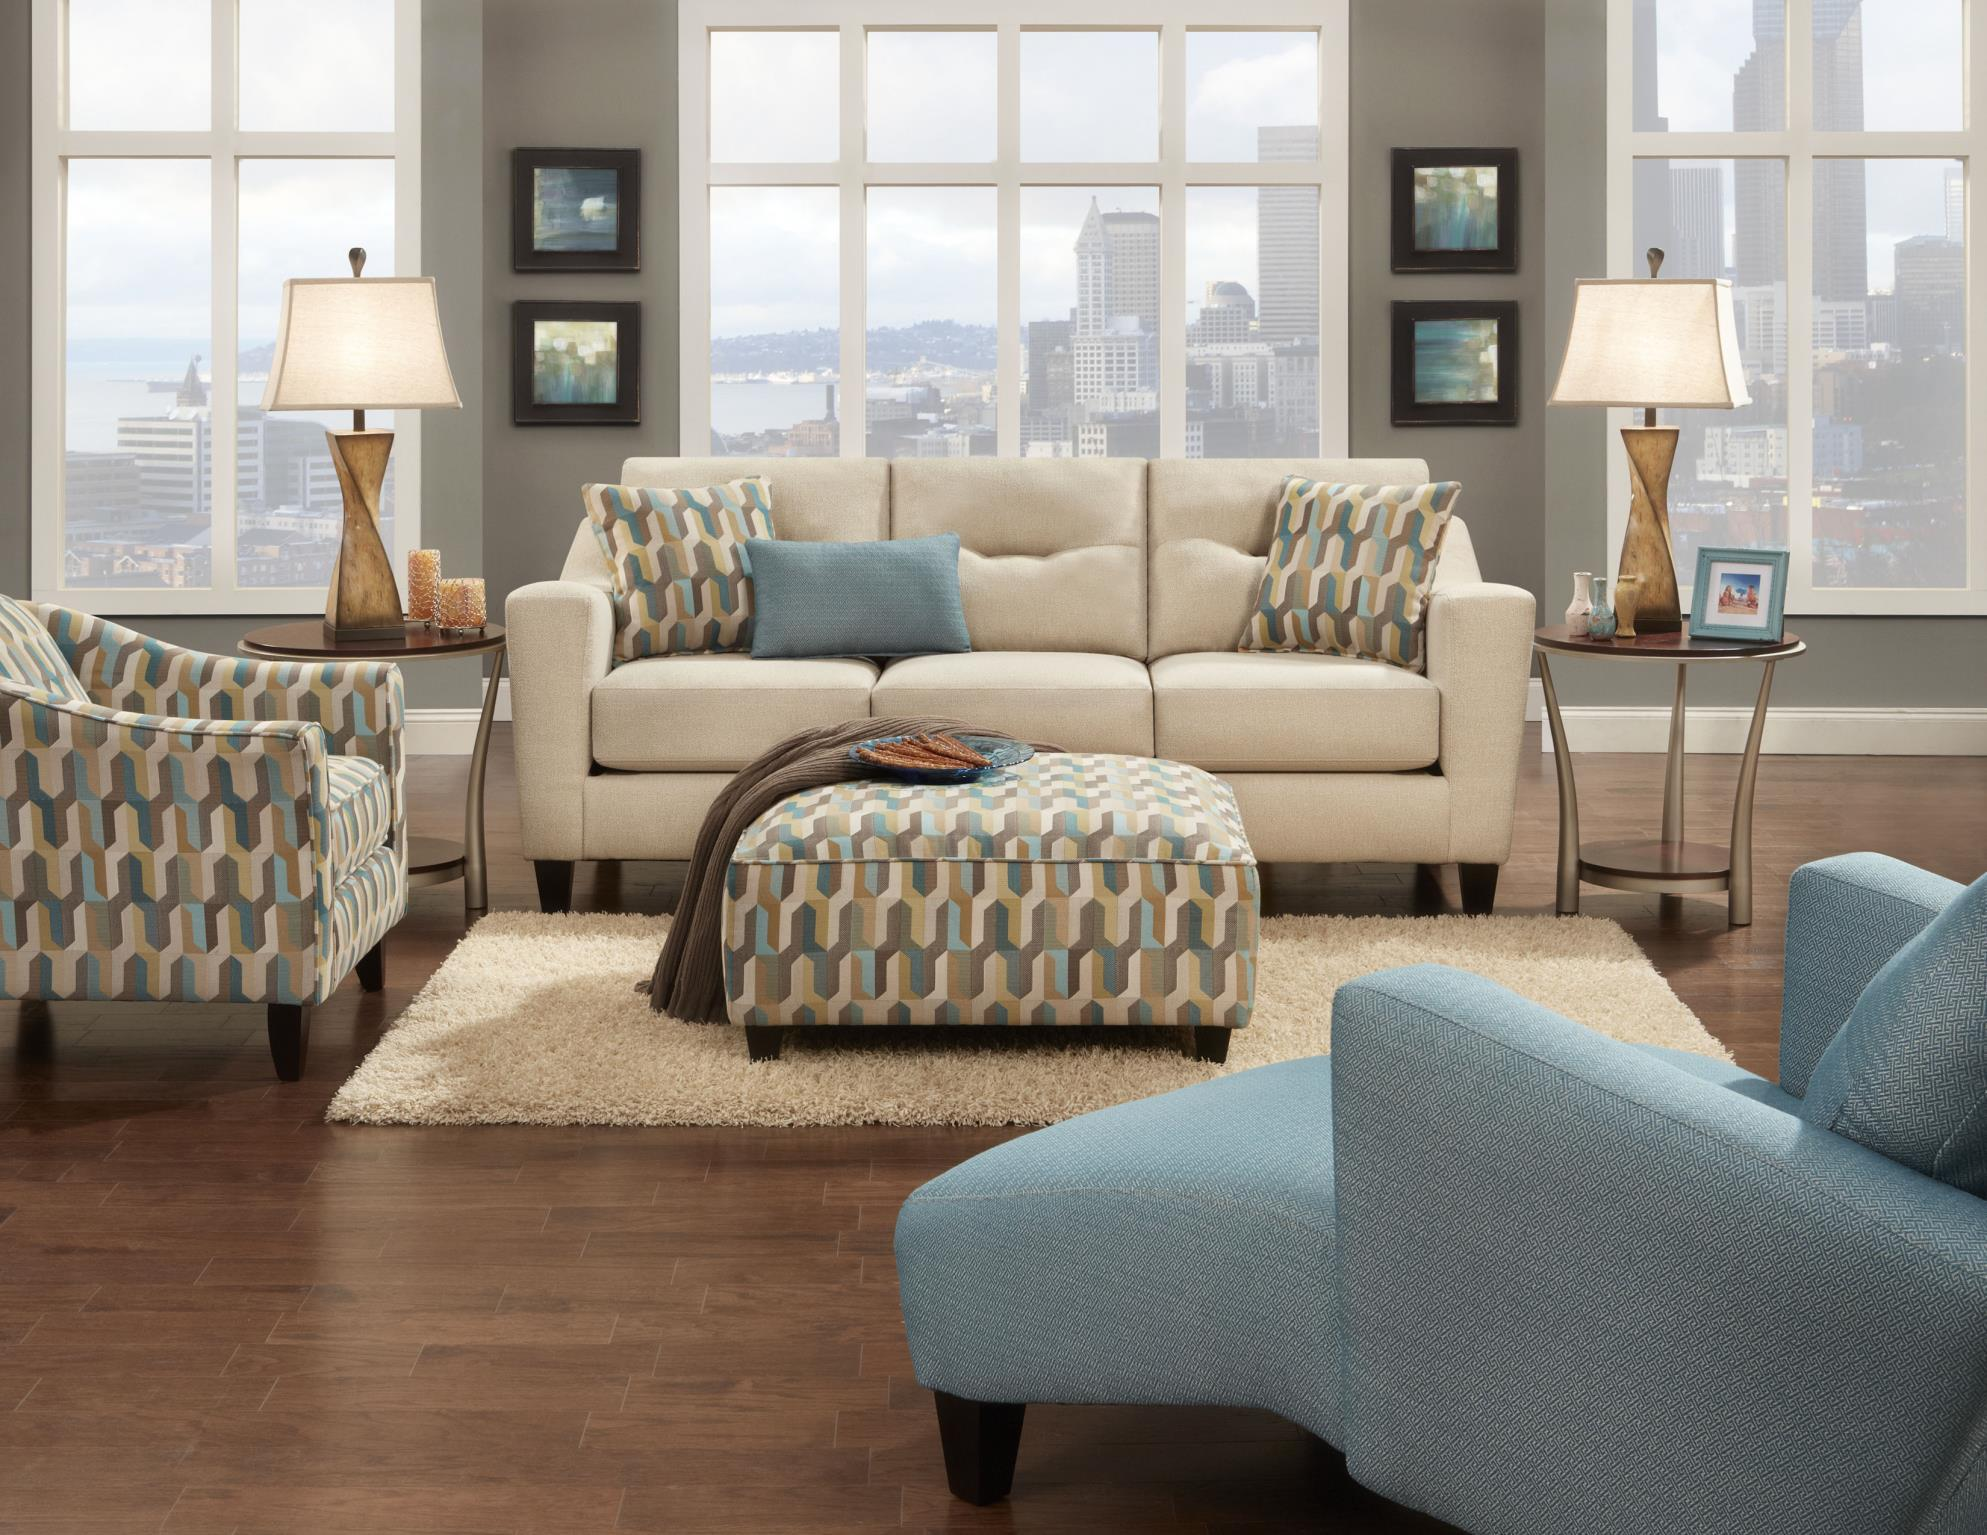 2 10 2016 55 Am 407119 Fusion Marcie Onyx Collection Jpg 77147 Maxwell Gray Chair 392 Kp 22650